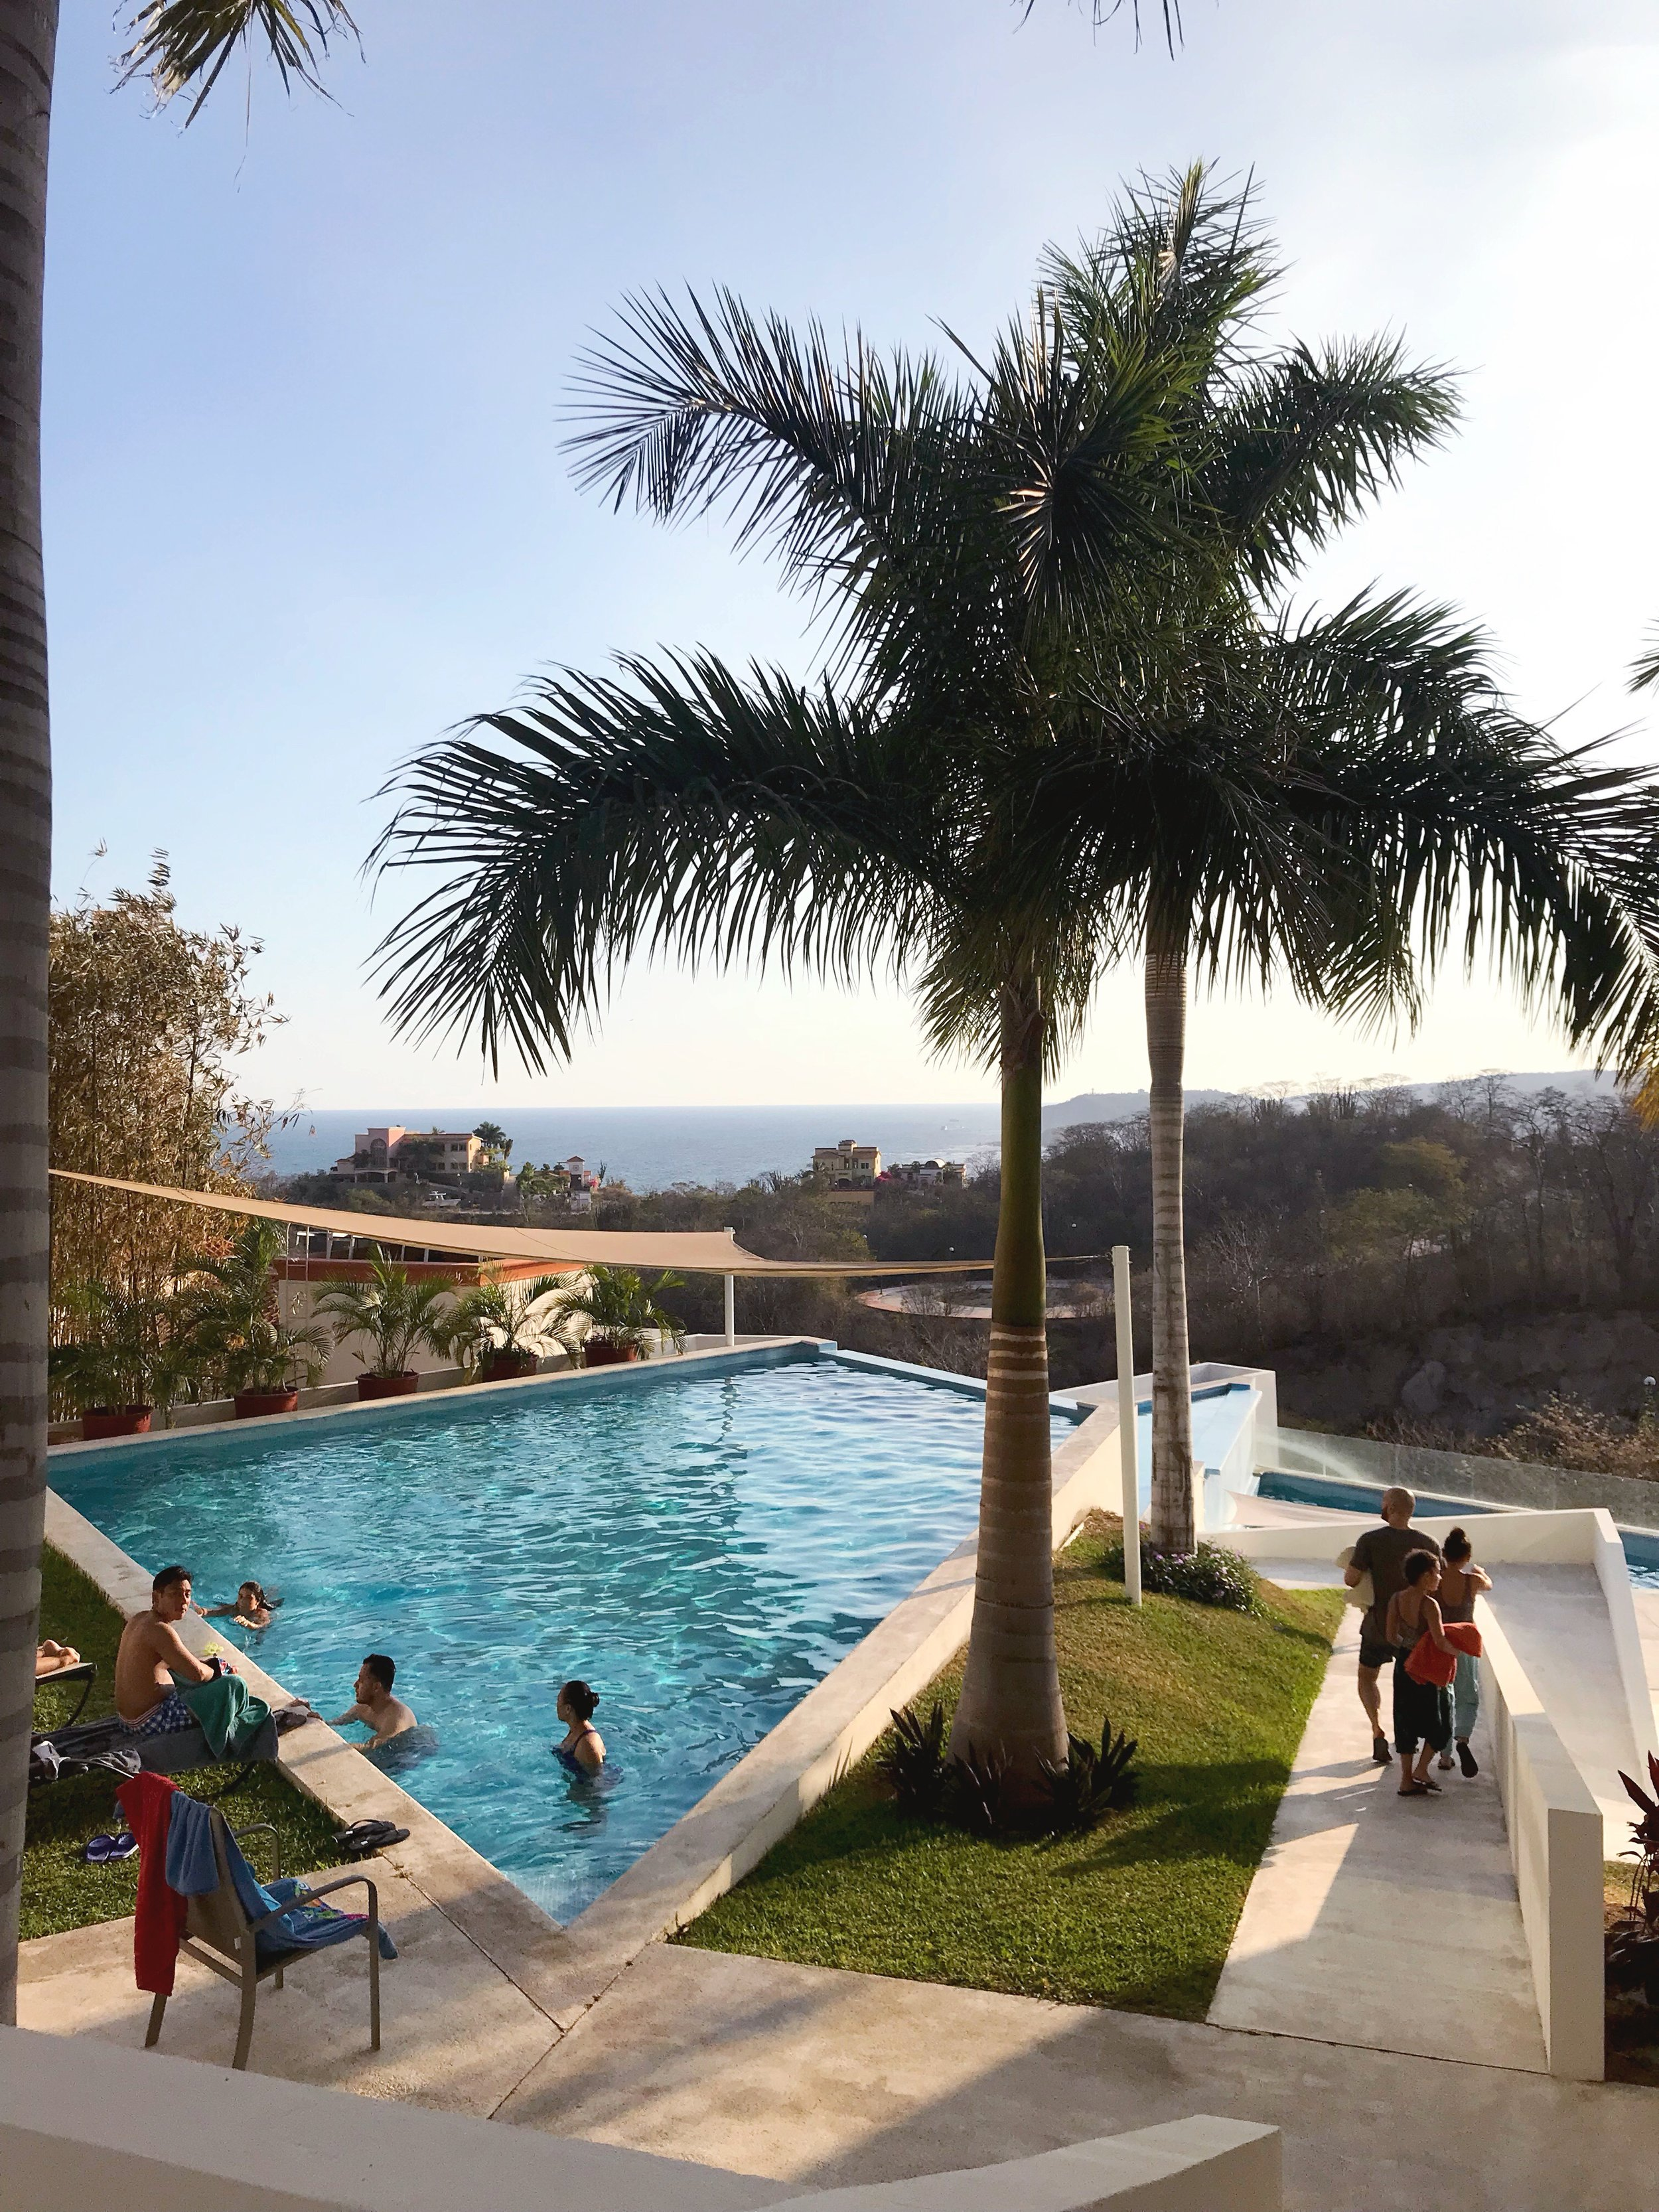 Huatulco-Mexico-for-families-sustainable-travel-ethical-travel-afro-latina-black-blogger-family-travel-blogger-multicultural-family-negra-bohemian-huatulco-airbnb